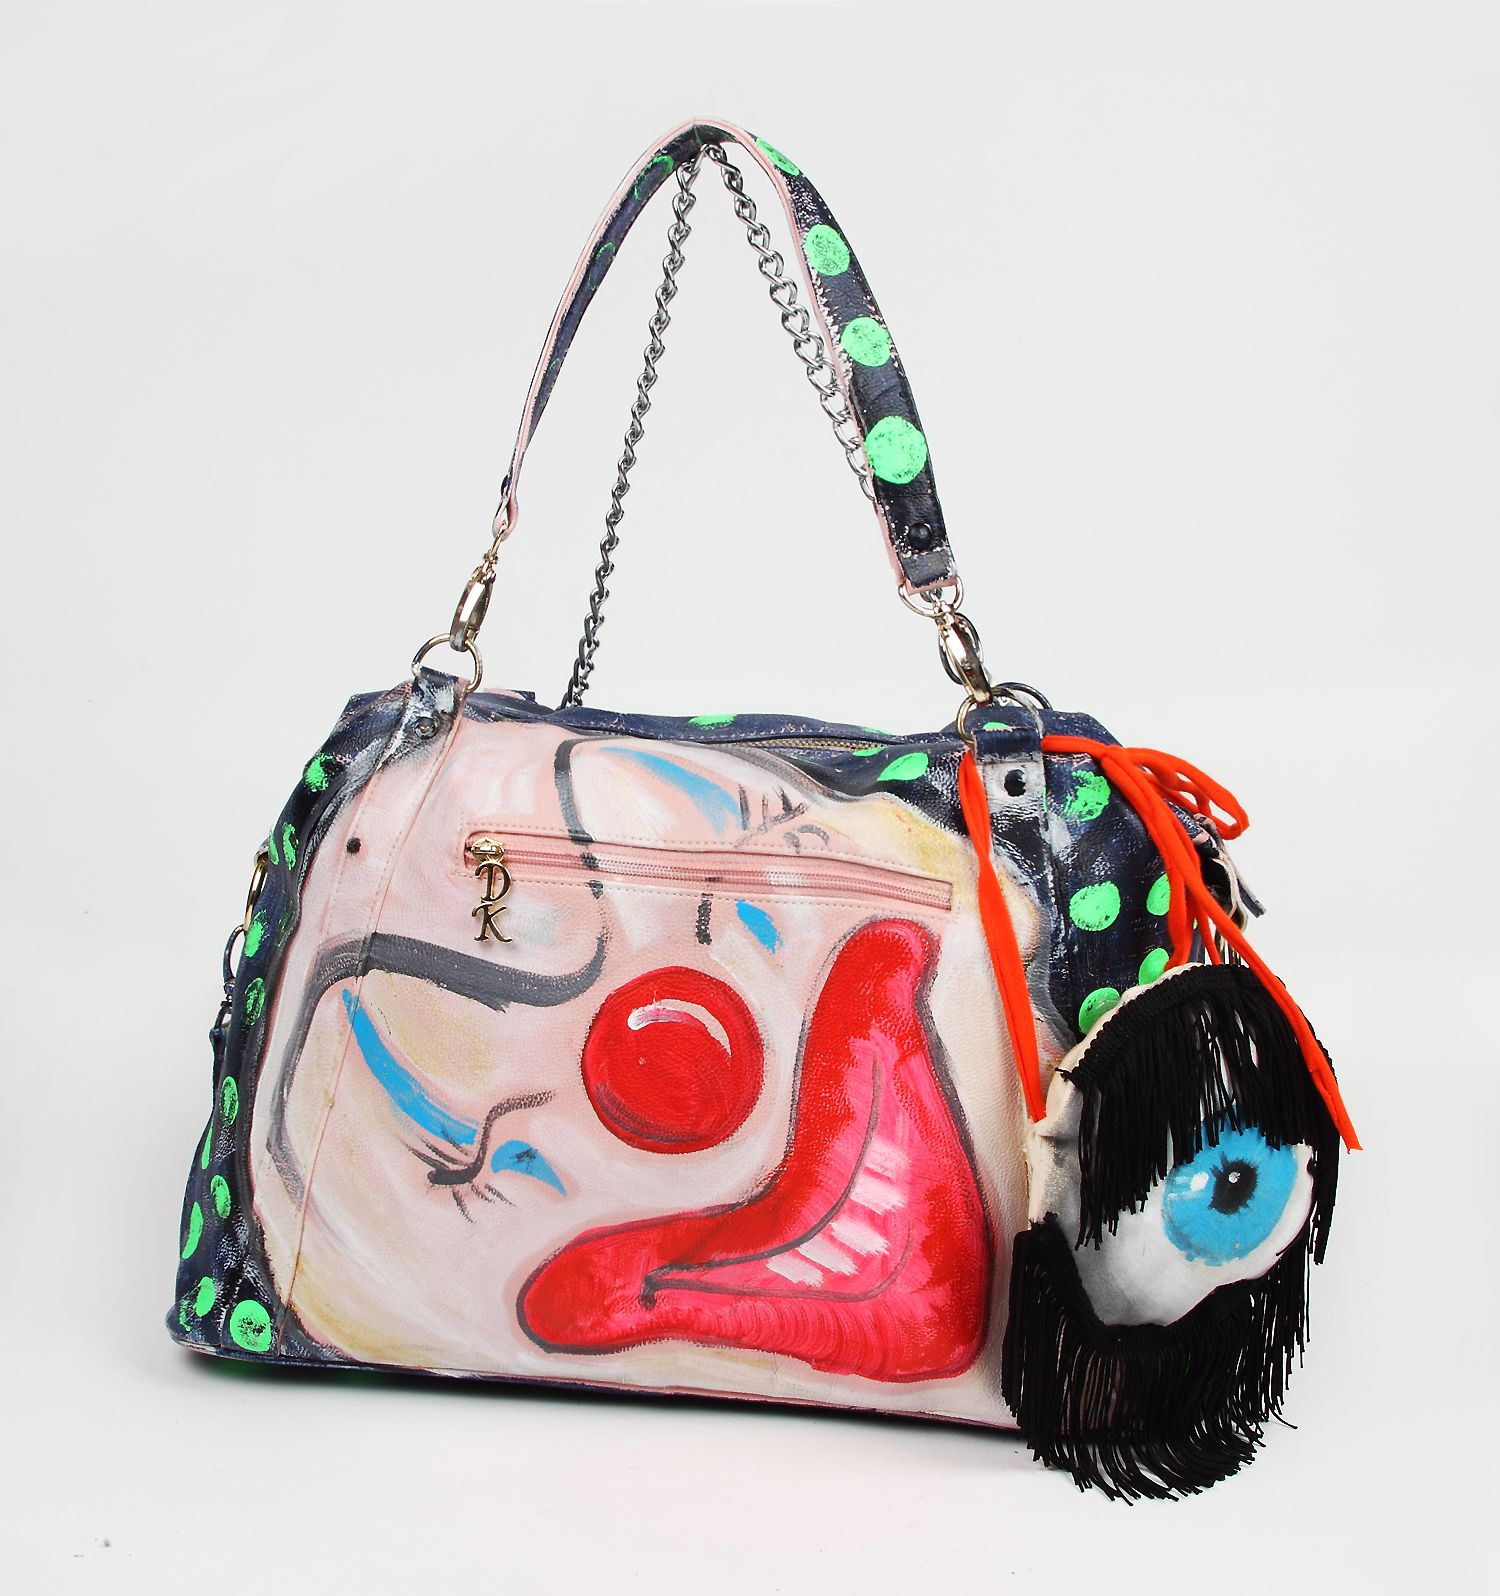 e8067d9f4a933 Scooter LaForge Busted Clown Purse Ⅱ